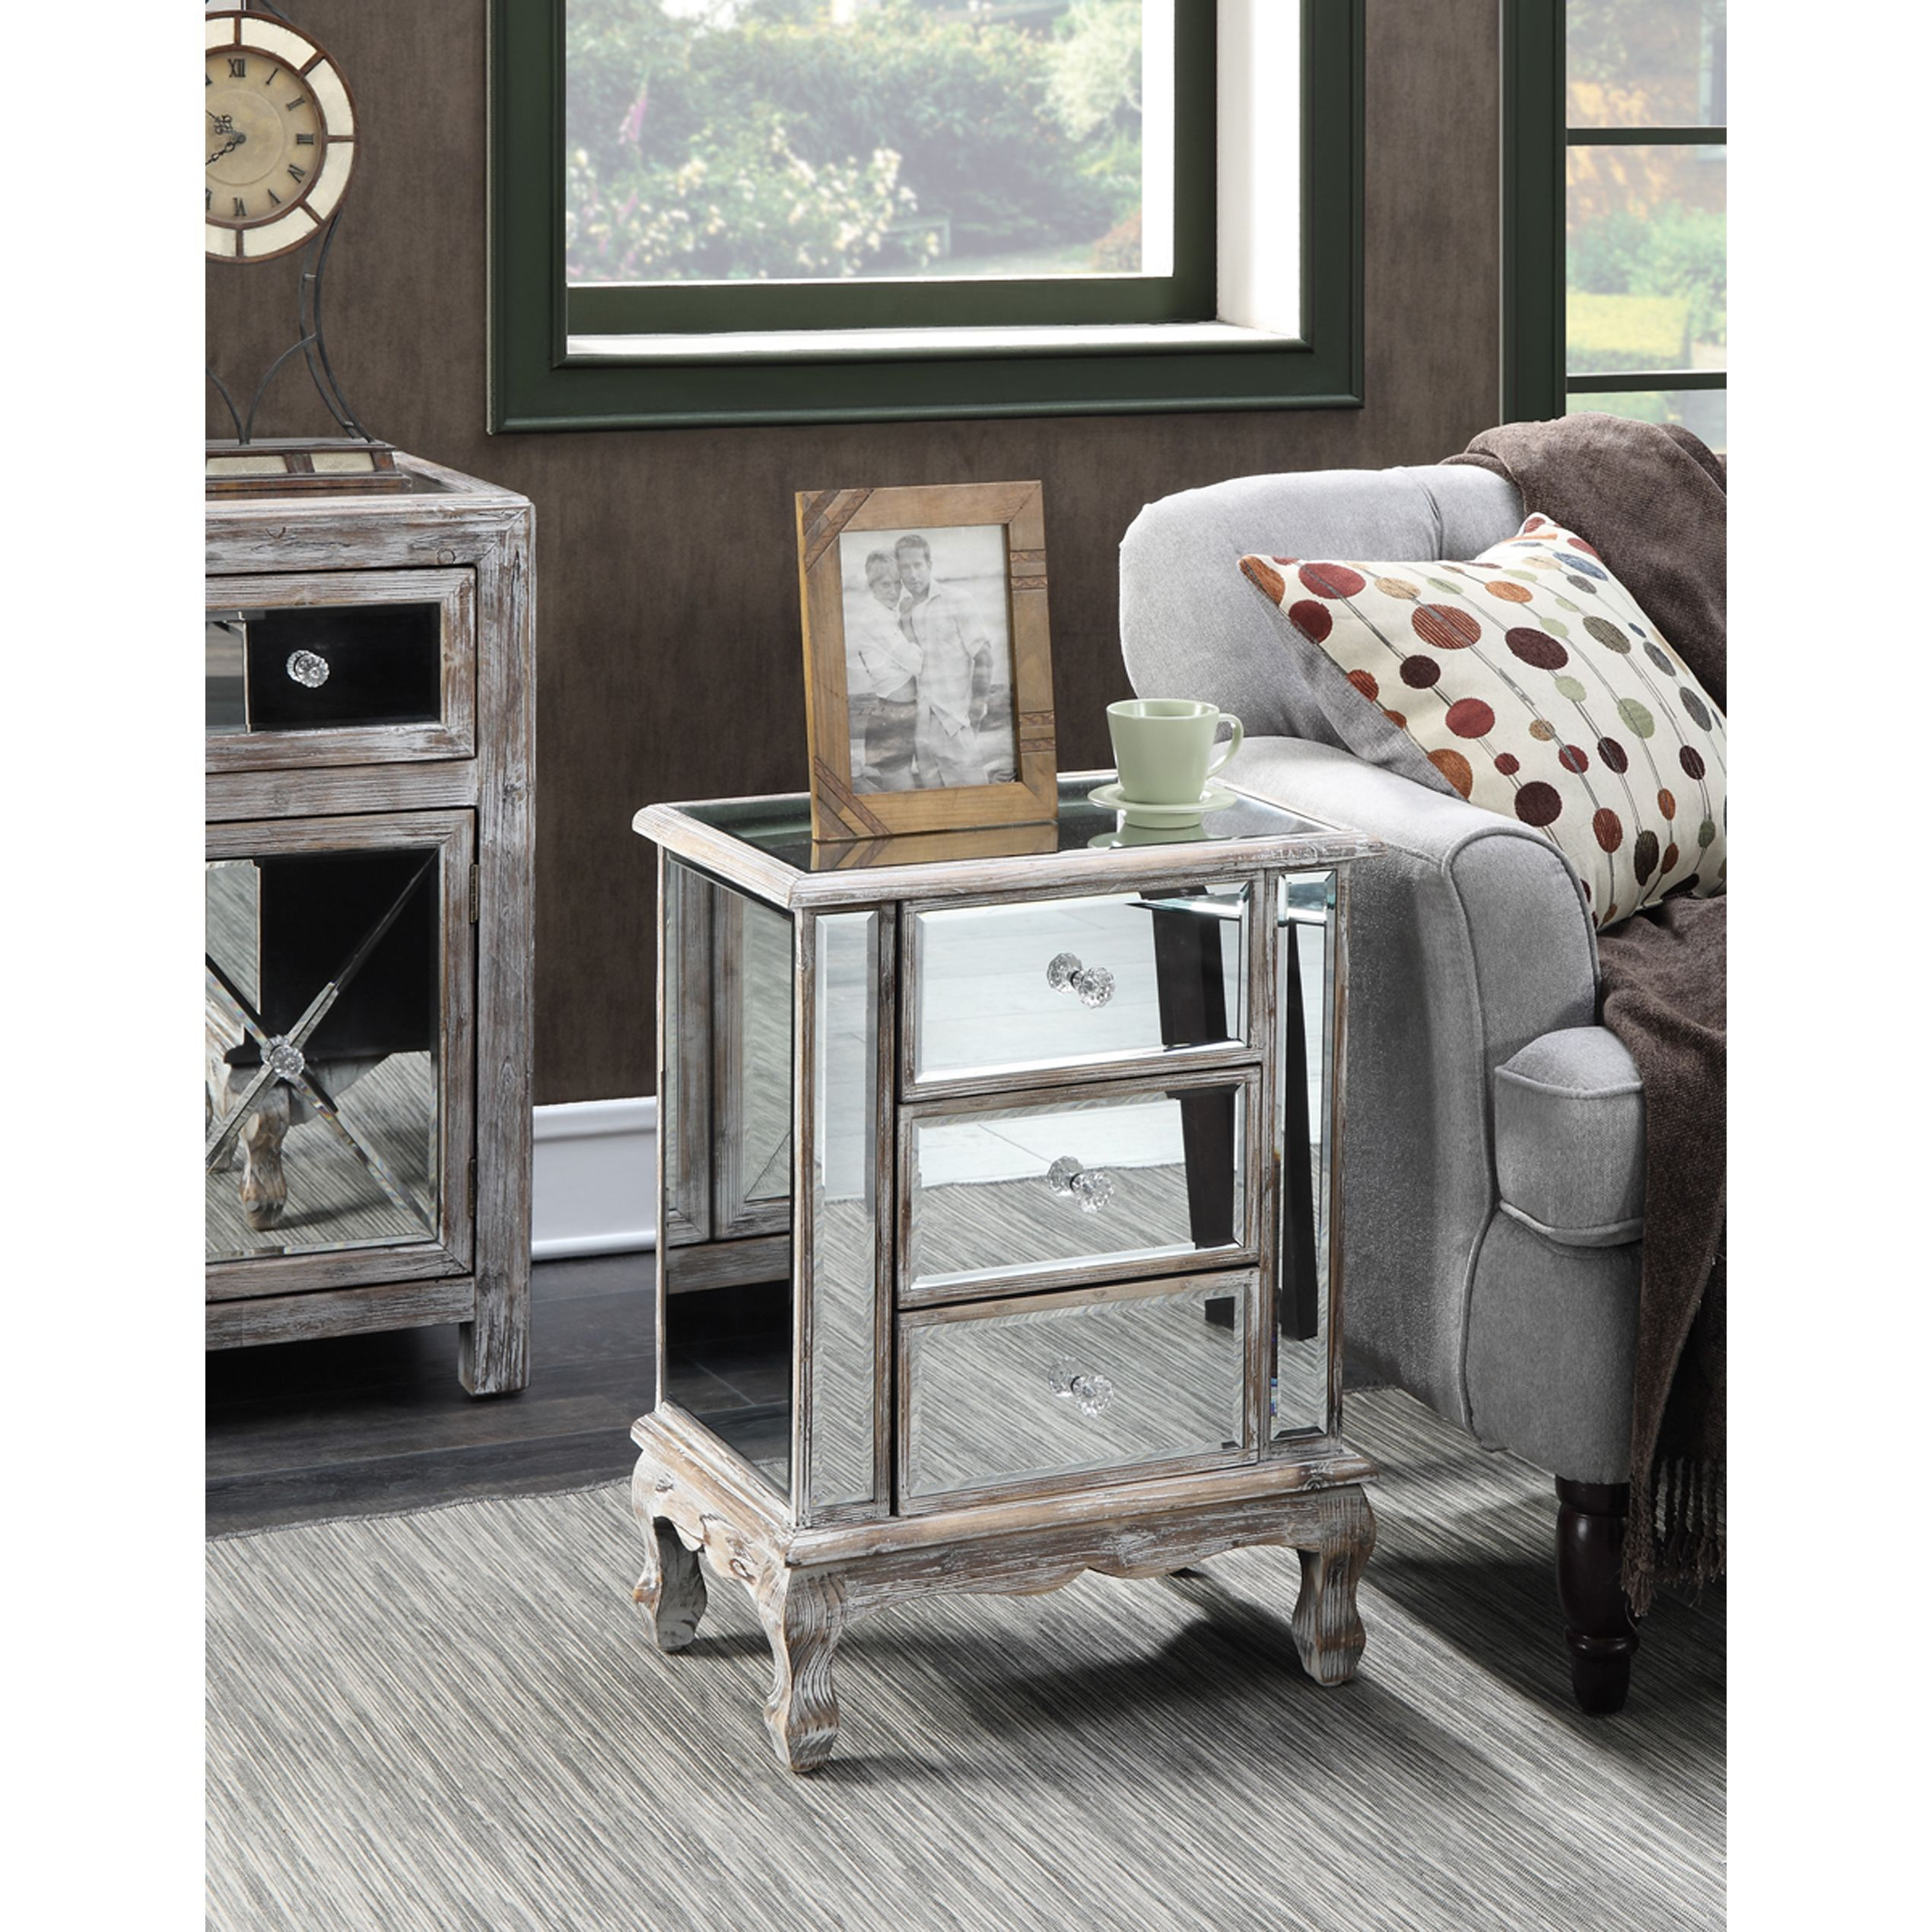 gold coast vineyard drawer mirrored end table weathered gray accent grey snack west elm box frame coffee mission brass side dining with six chairs sheesham wood nest tables ikea